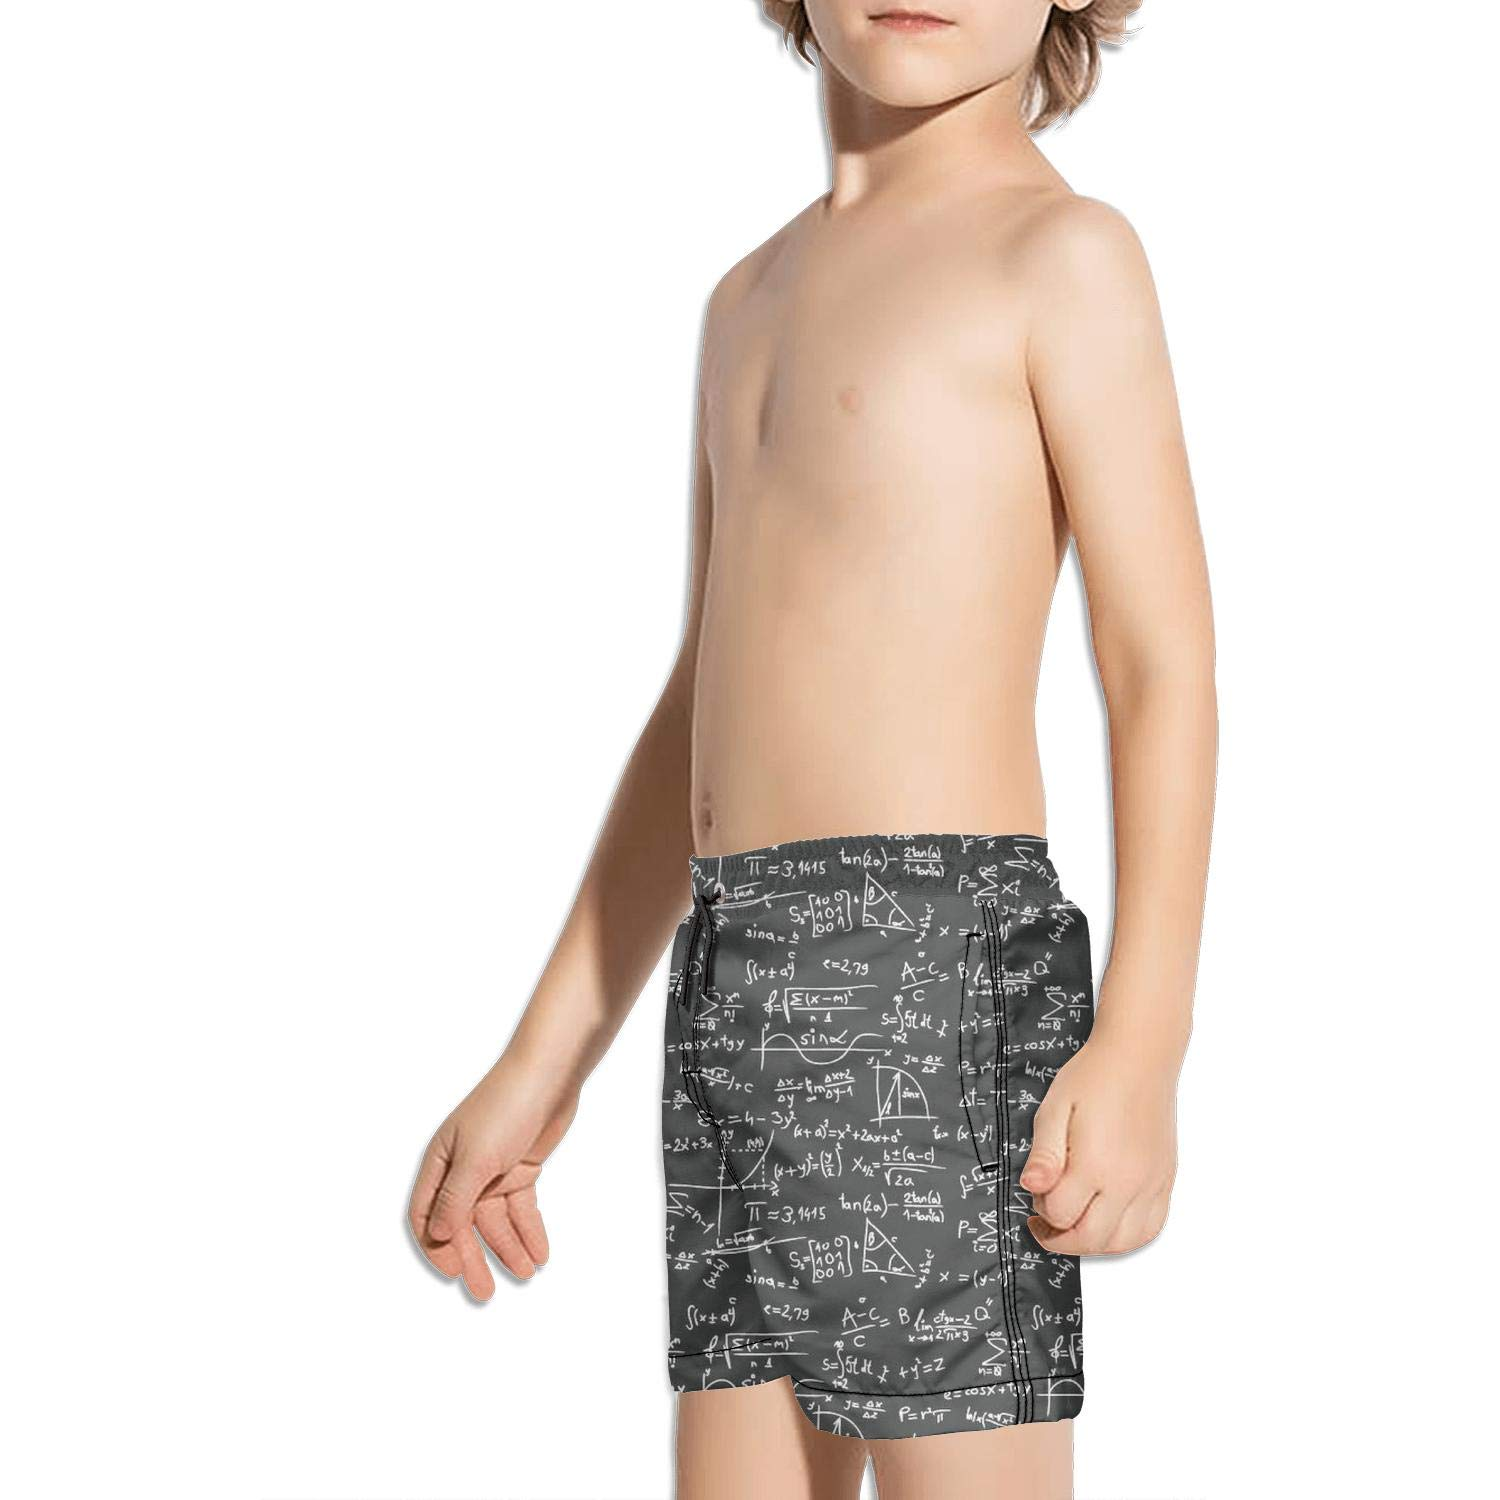 LKIMNJ Boys Board Shorts Math Equations Problem sloving Quick Dry Bathing Suits Beach Board Shorts